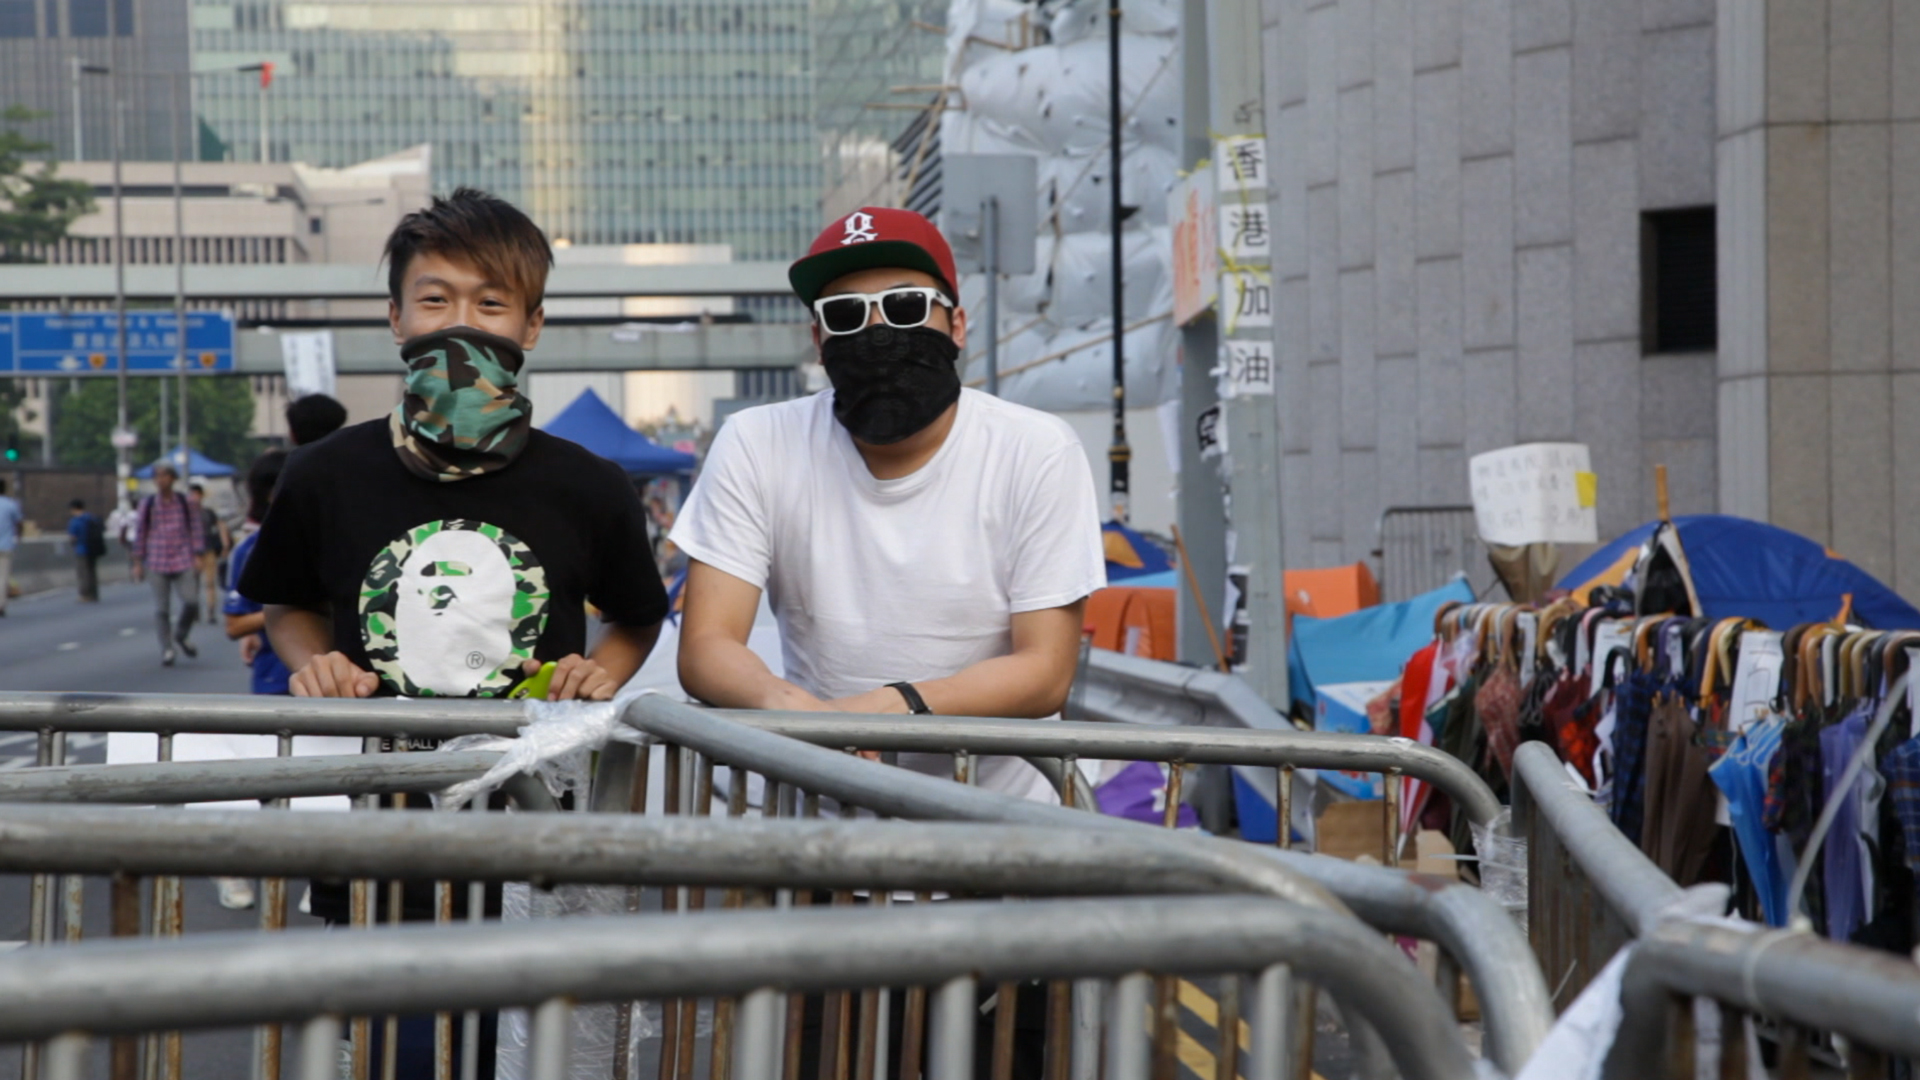 The last of the Hong Kong protesters